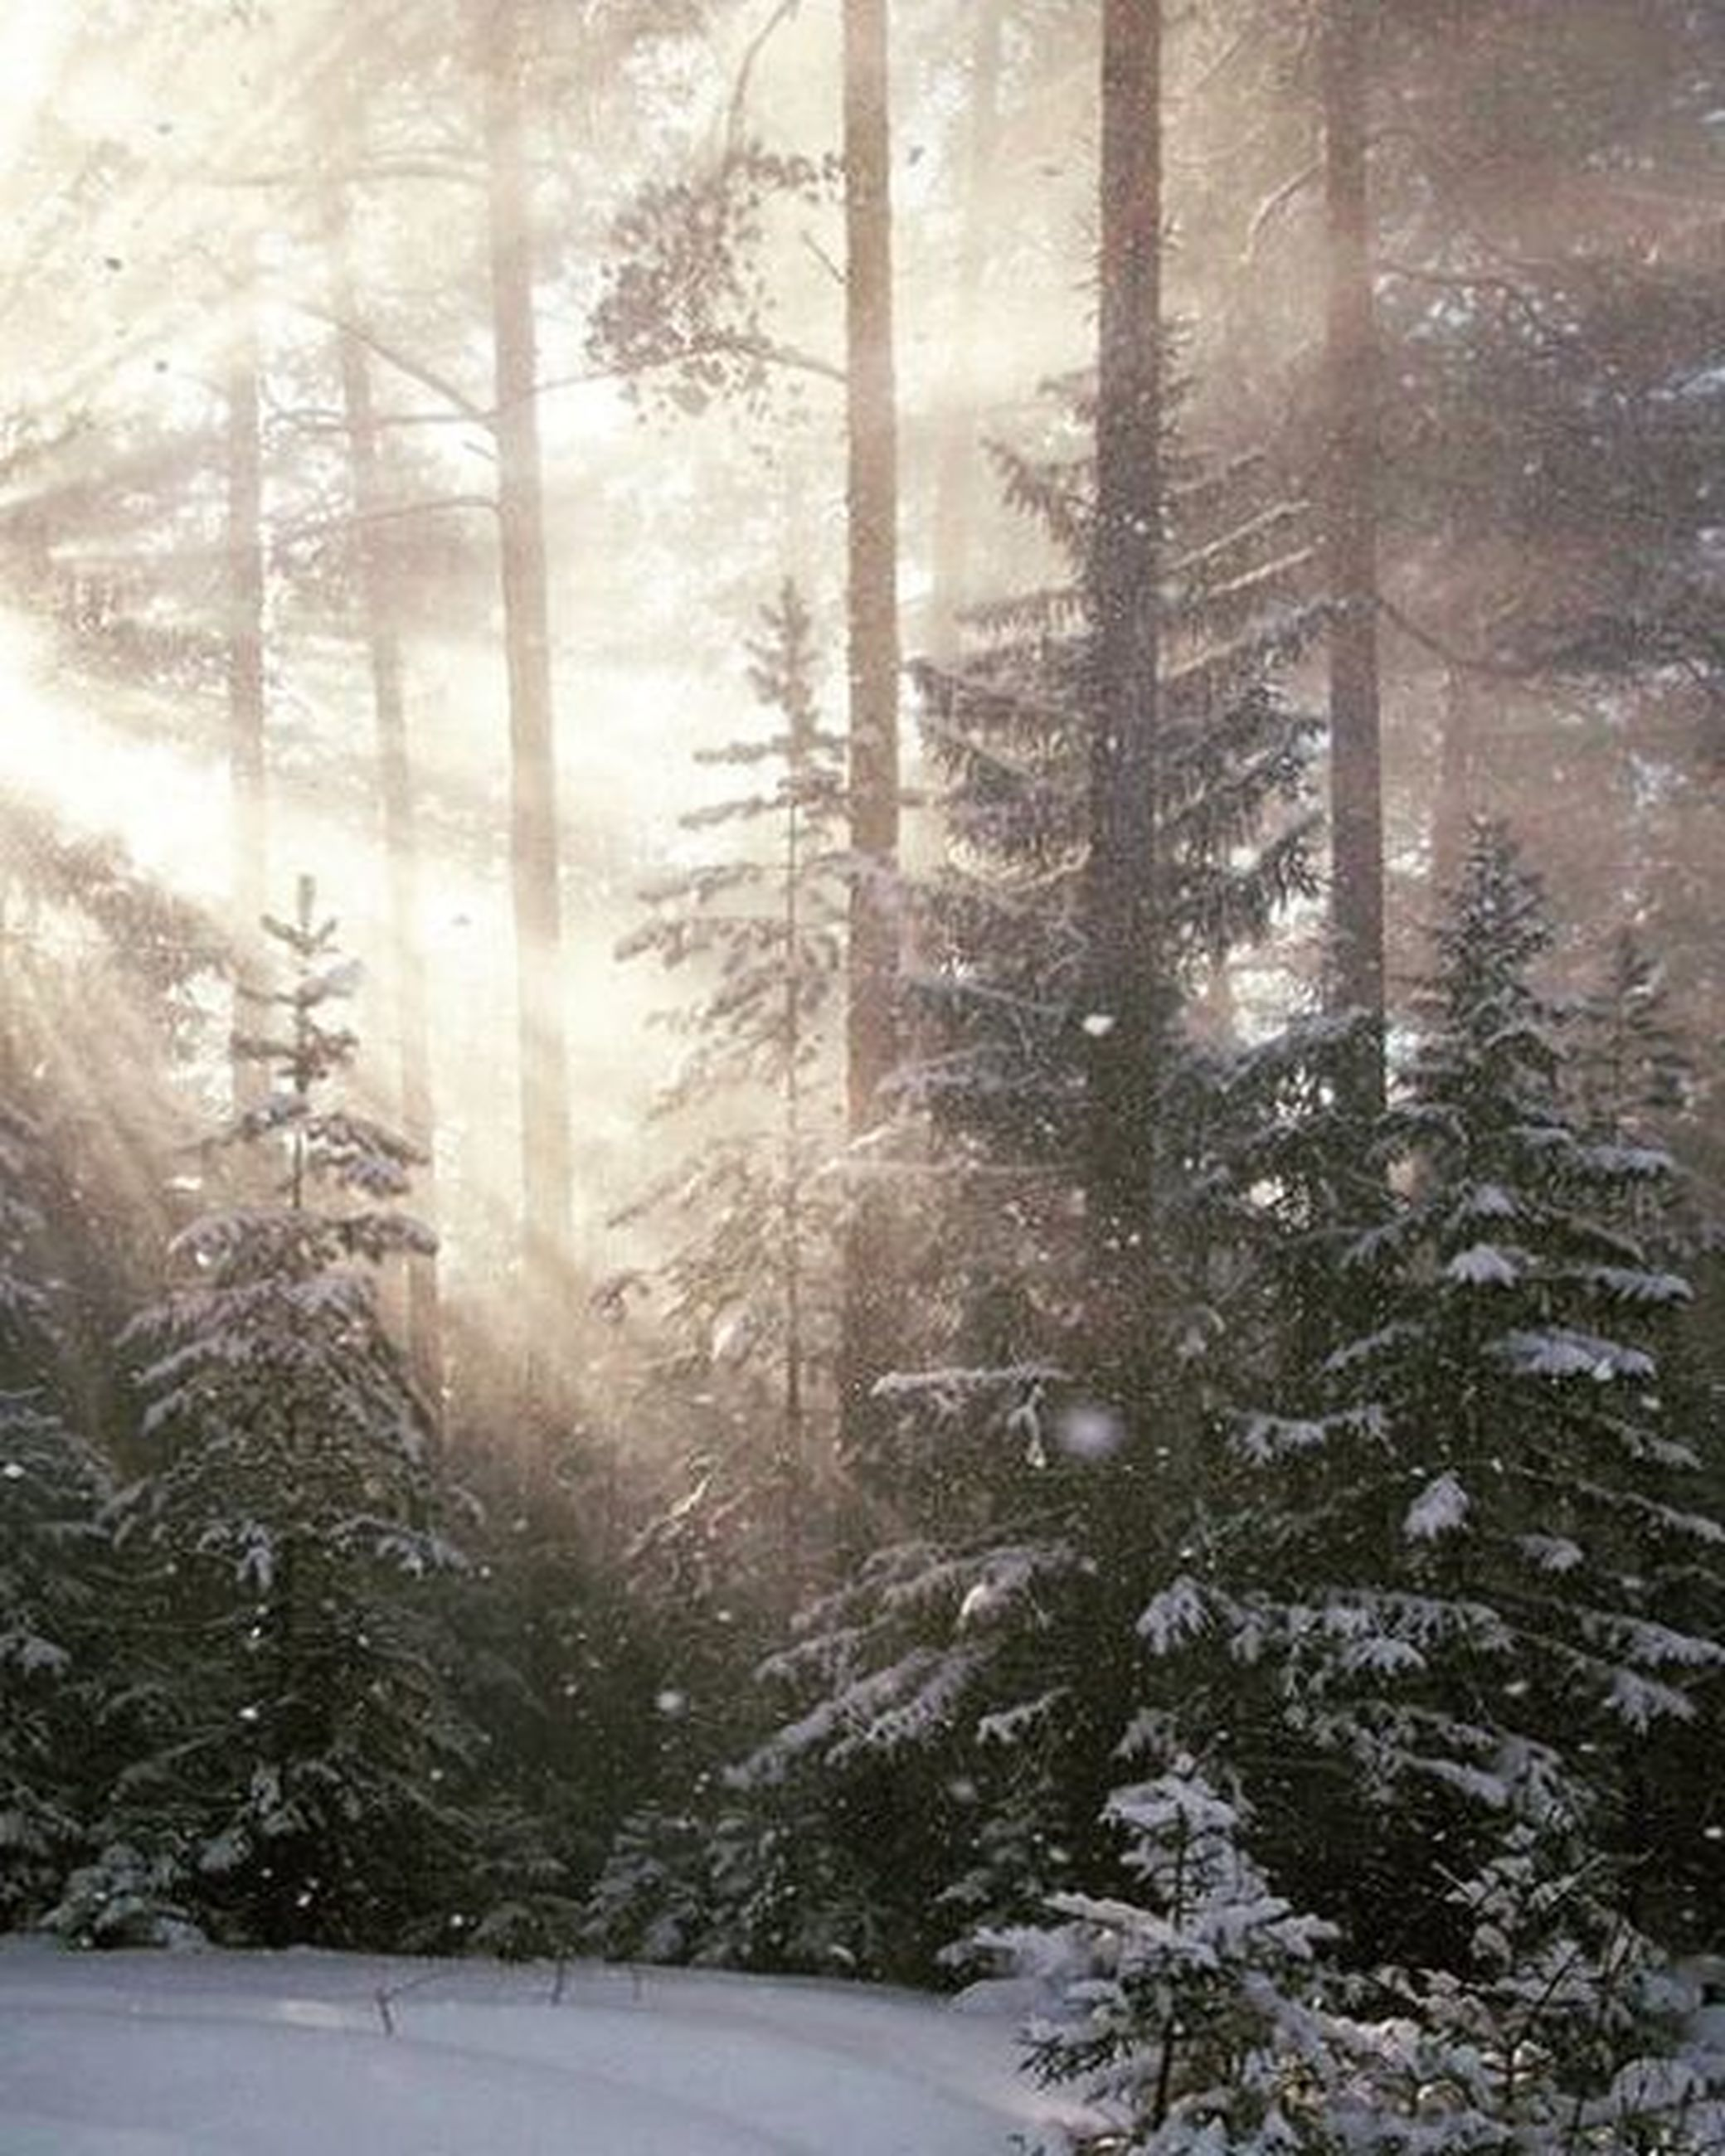 tree, winter, cold temperature, snow, tree trunk, season, weather, indoors, glass - material, nature, fog, forest, tranquility, window, transparent, covering, bare tree, sunlight, day, growth